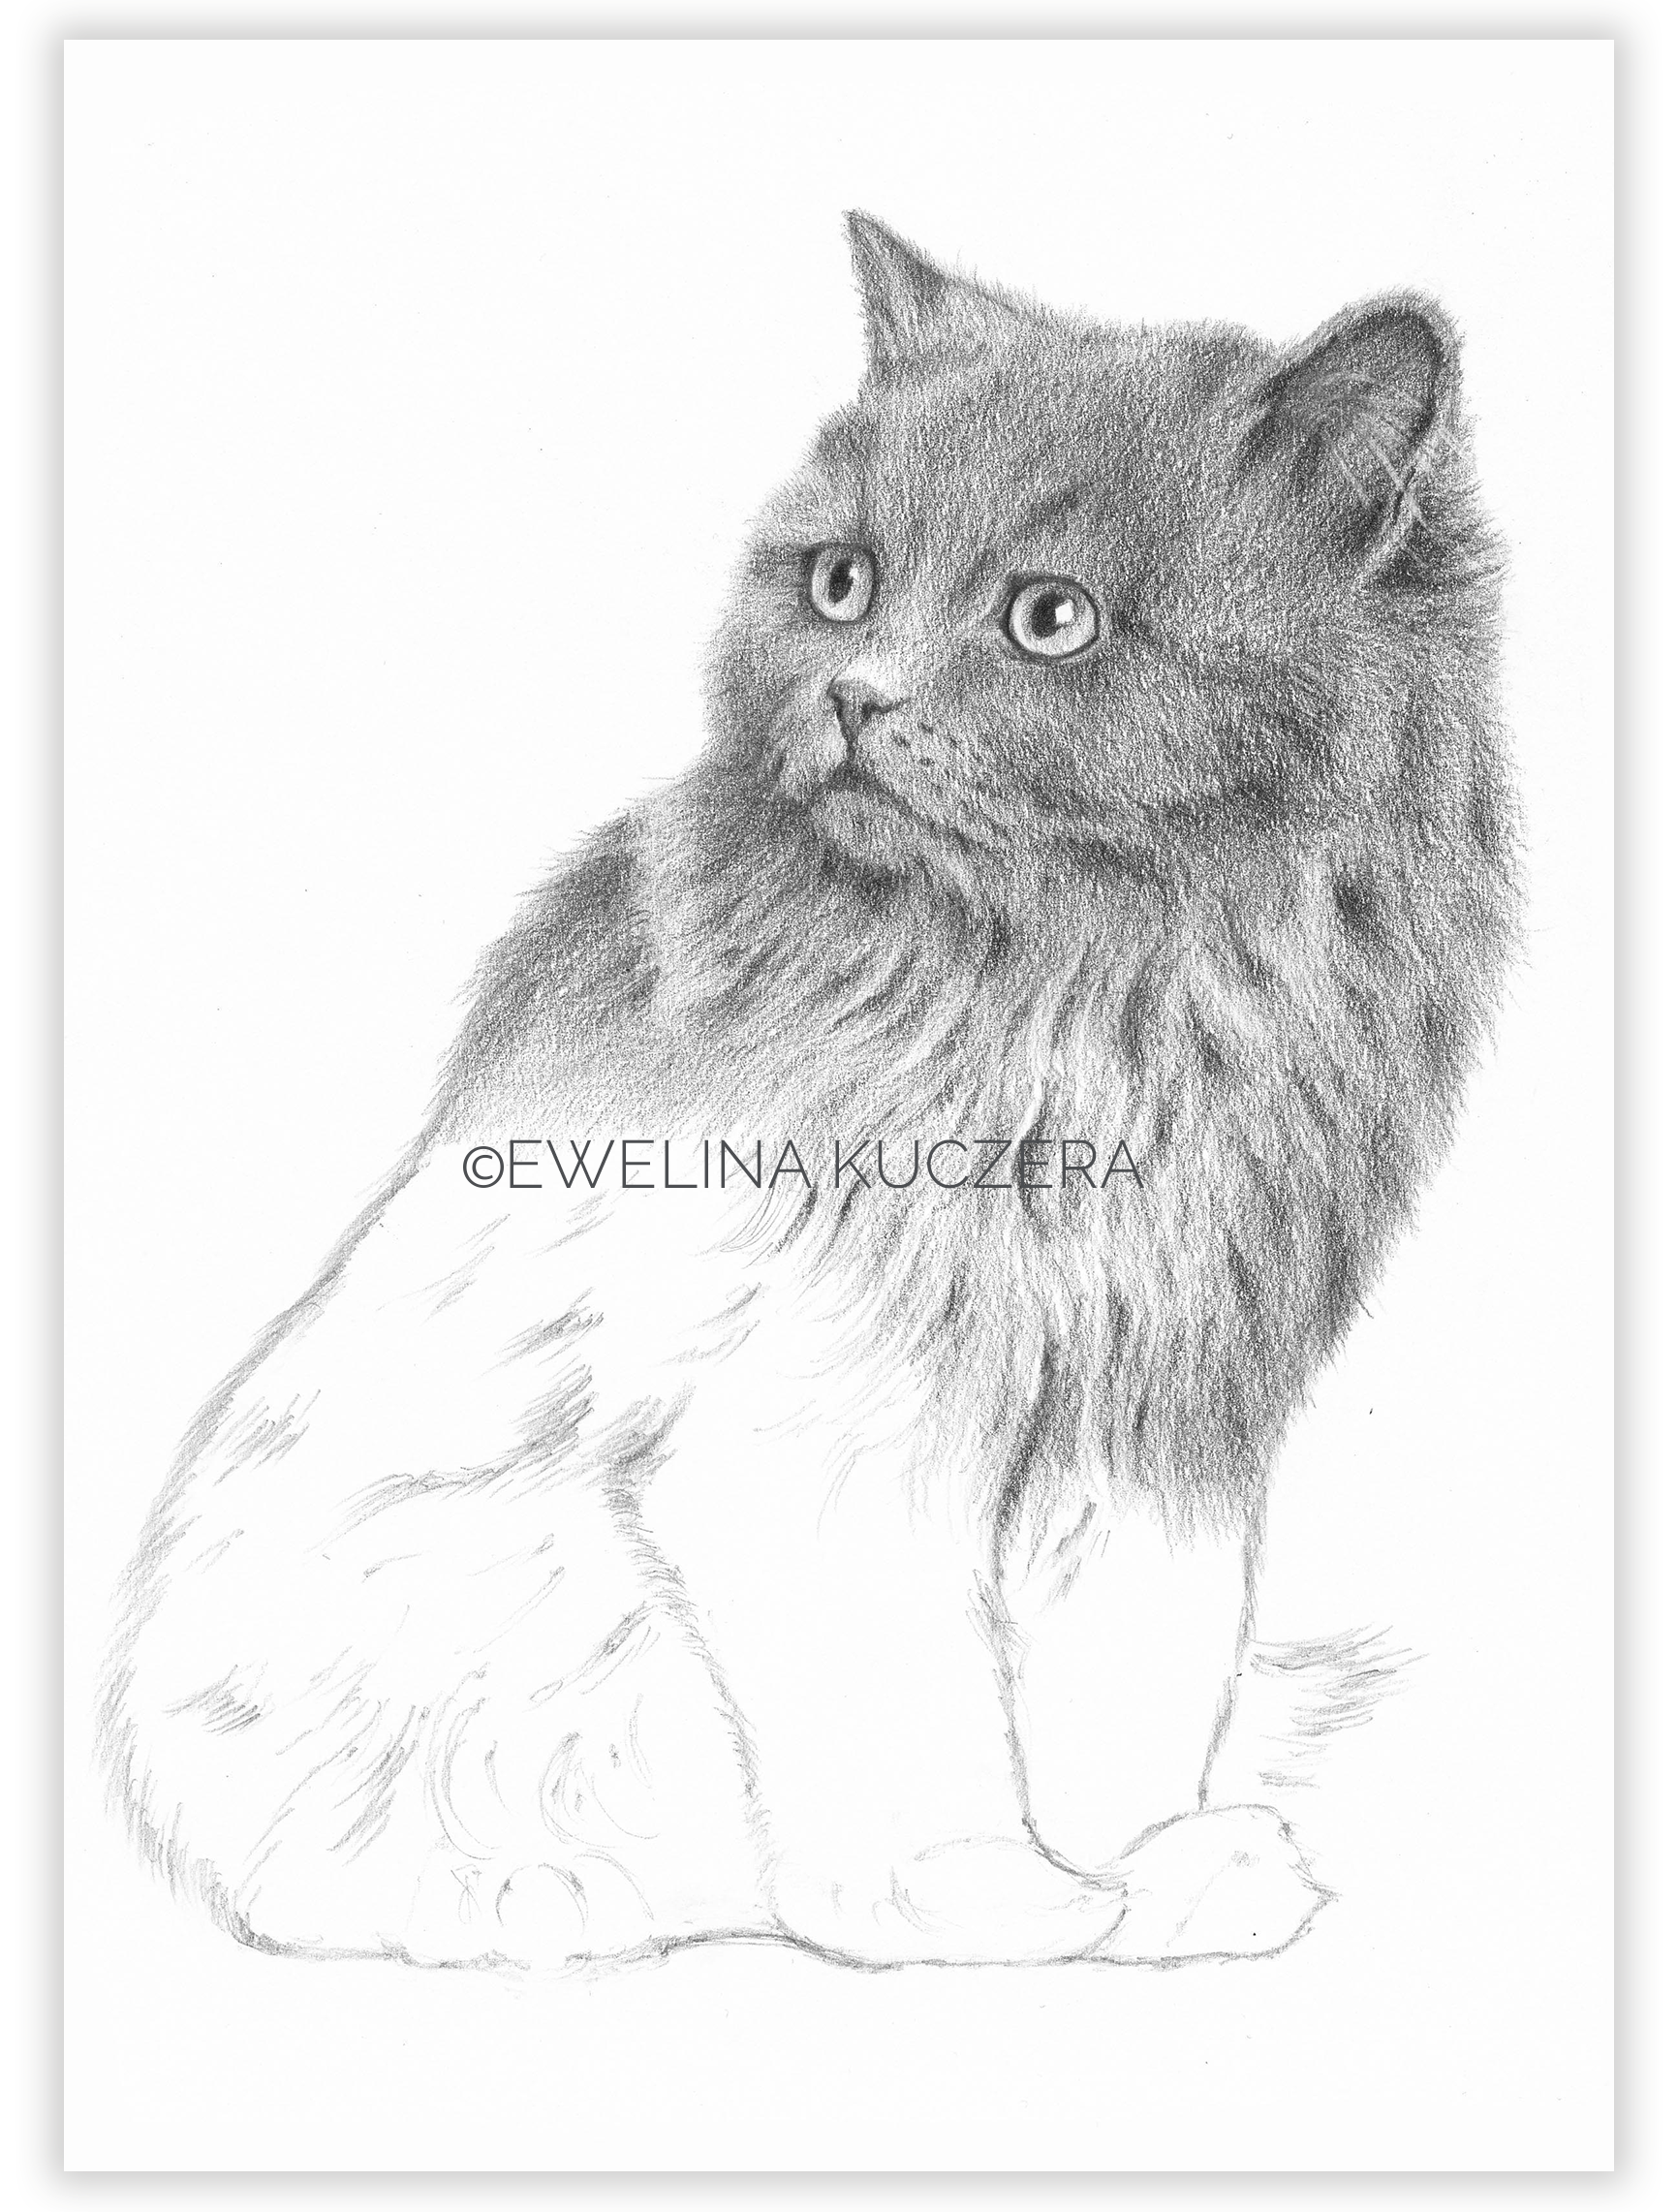 How To Draw A Cat Tutorial In 2020 Animal Sketches Drawings Art Blog